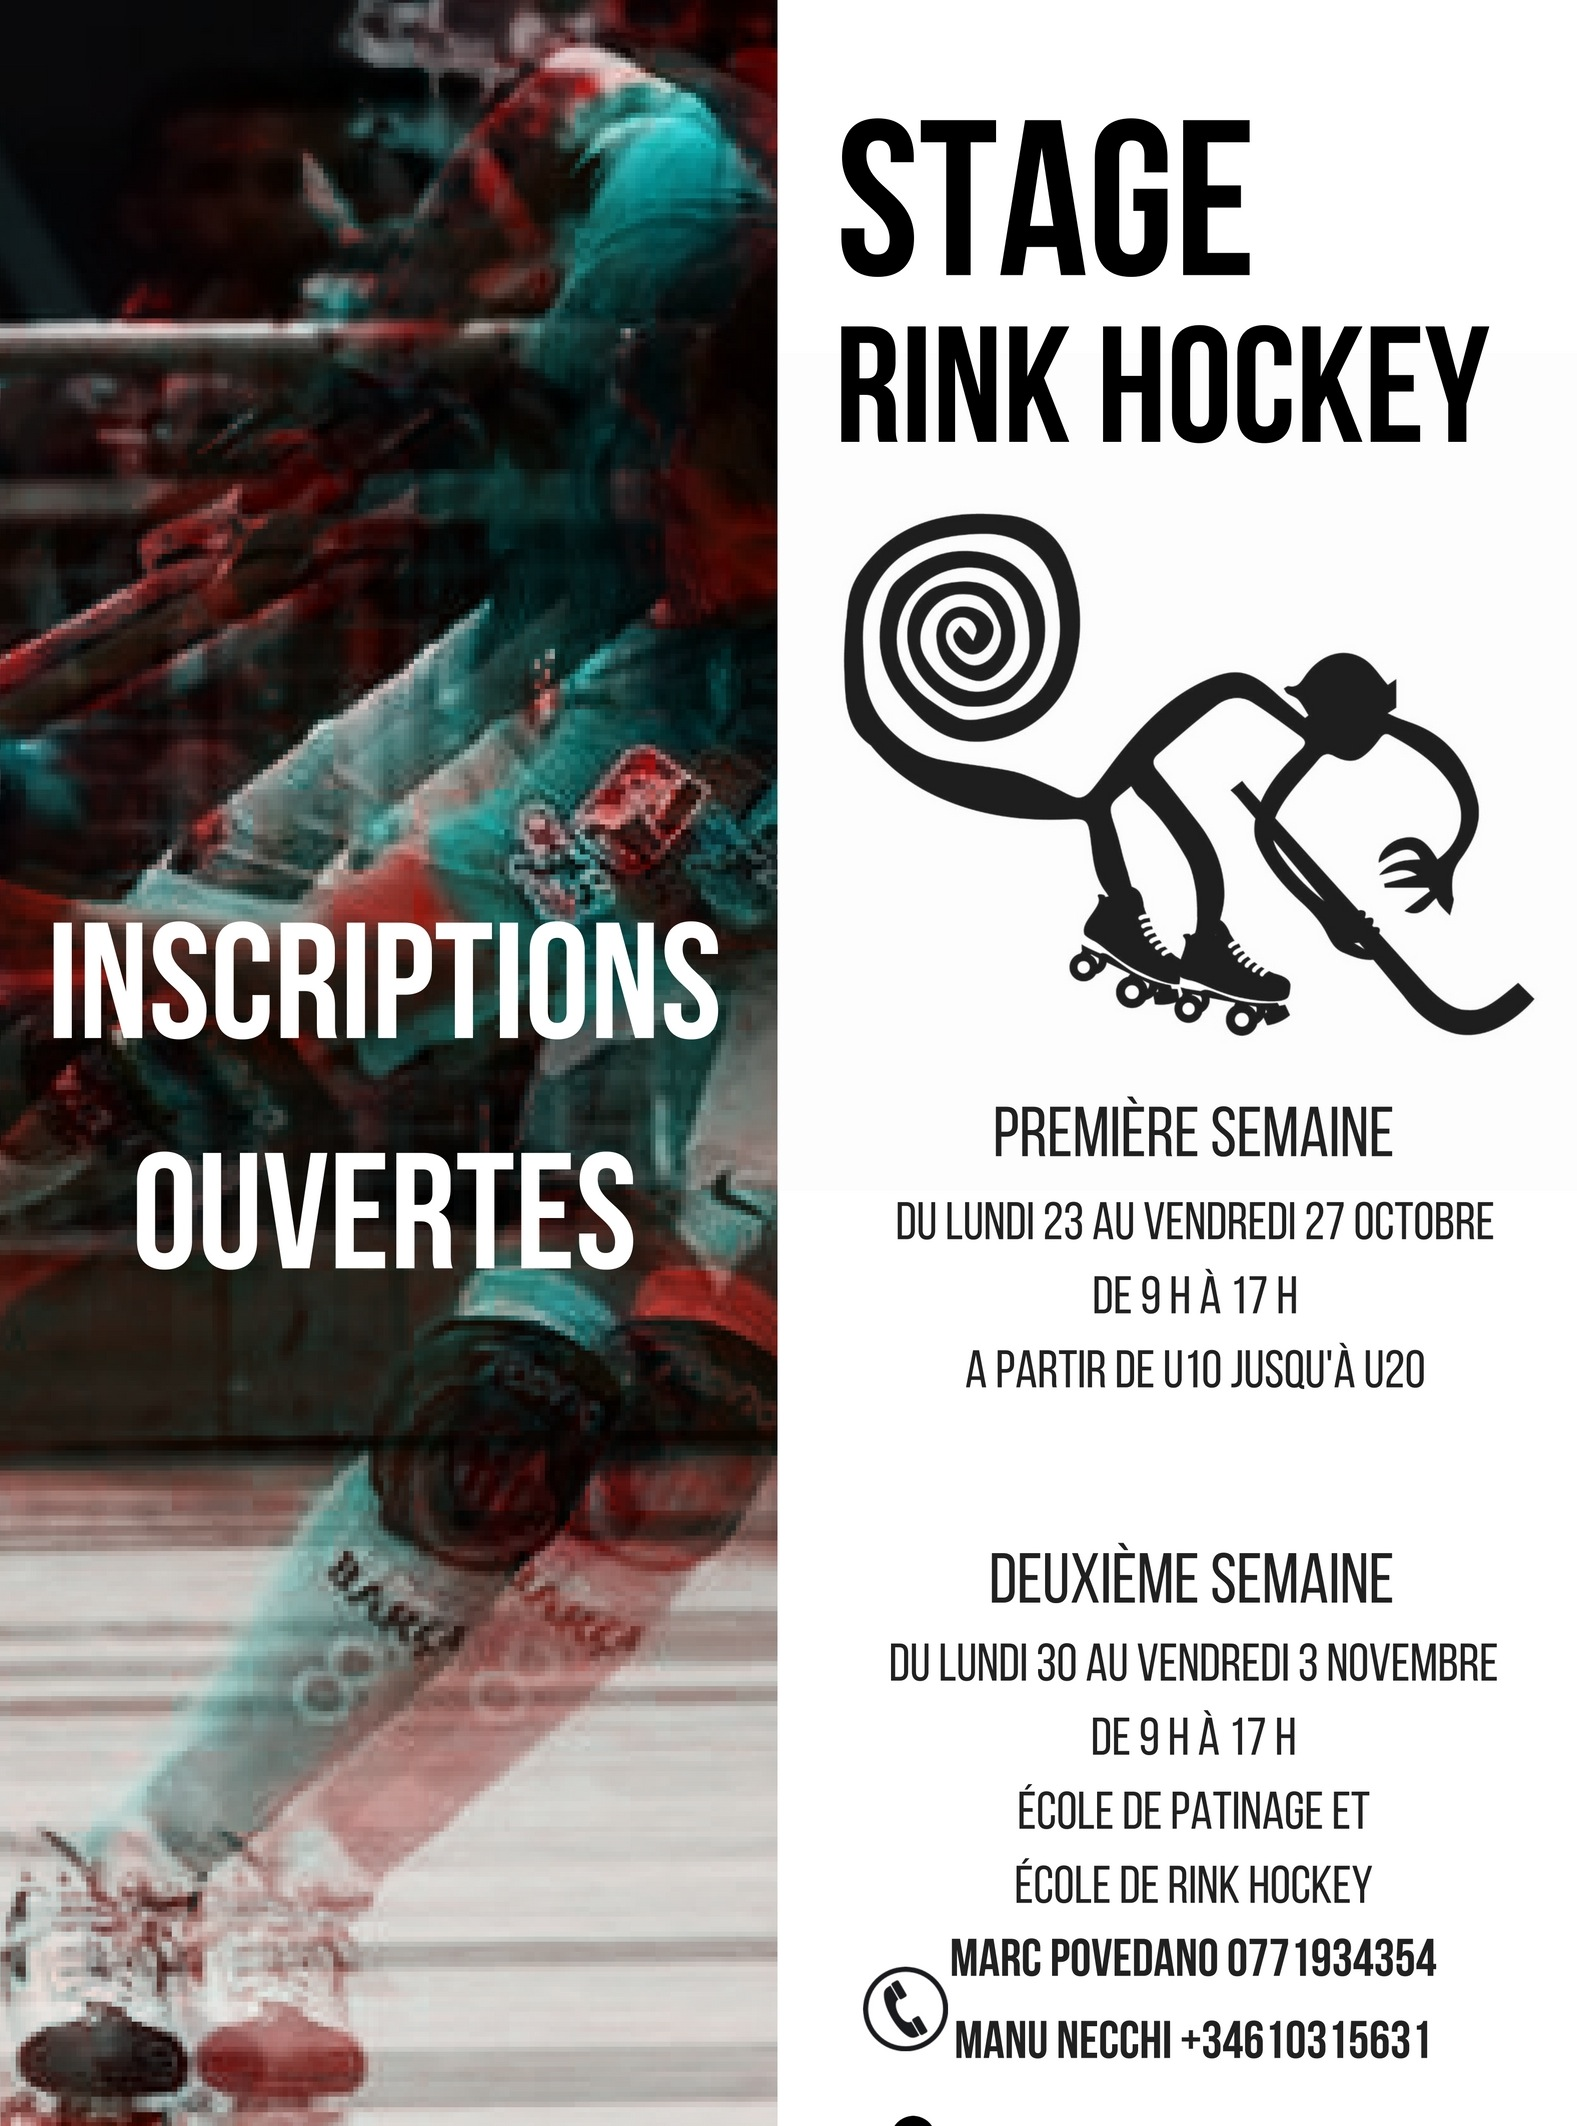 STAGE RINK HOCKEY